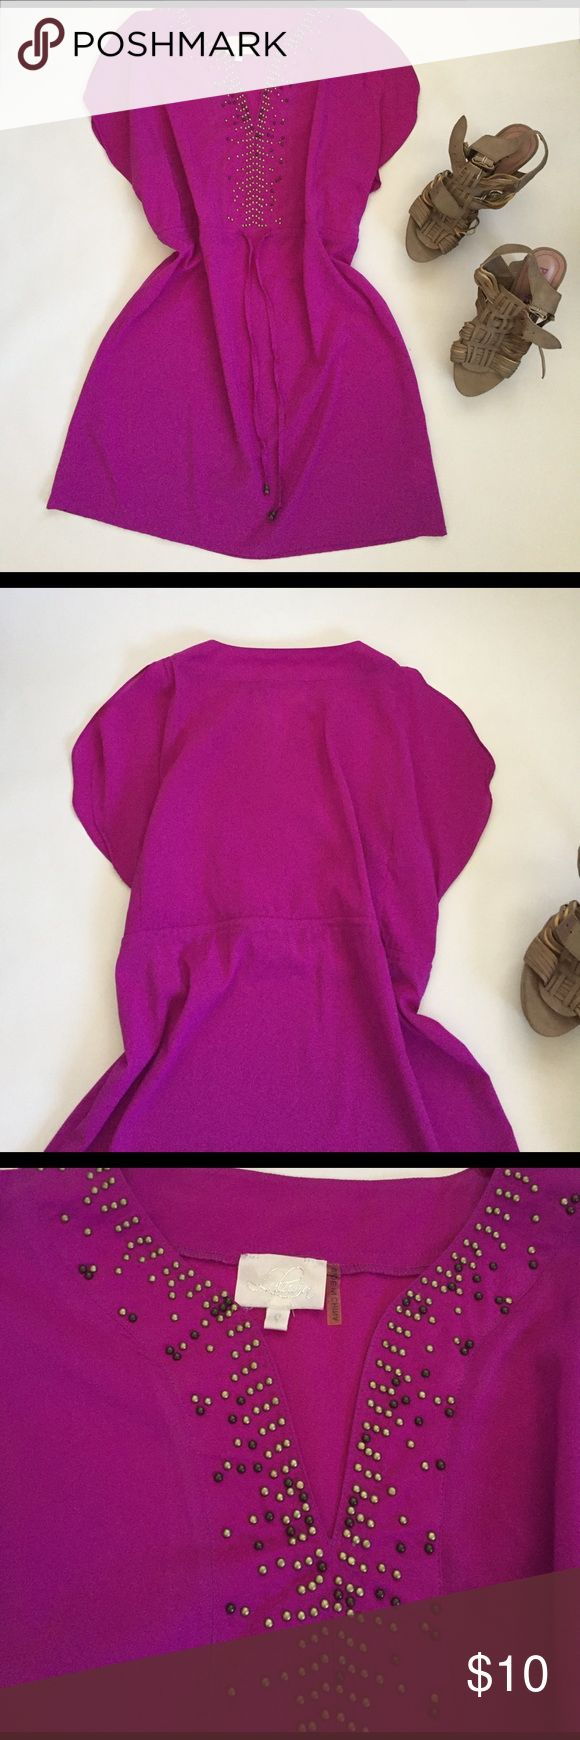 Fun purple dress I'm obsessed with the color of this dress! It's a beautiful magenta purple that looks amazing with a summer tan. Throw it on over your bikini and you have a perfect going out dress! Draw string waist, with flirty neck and sleeves. Well loved with a lot of wear left. Some beading on neck is missing, but barely noticeable Dresses